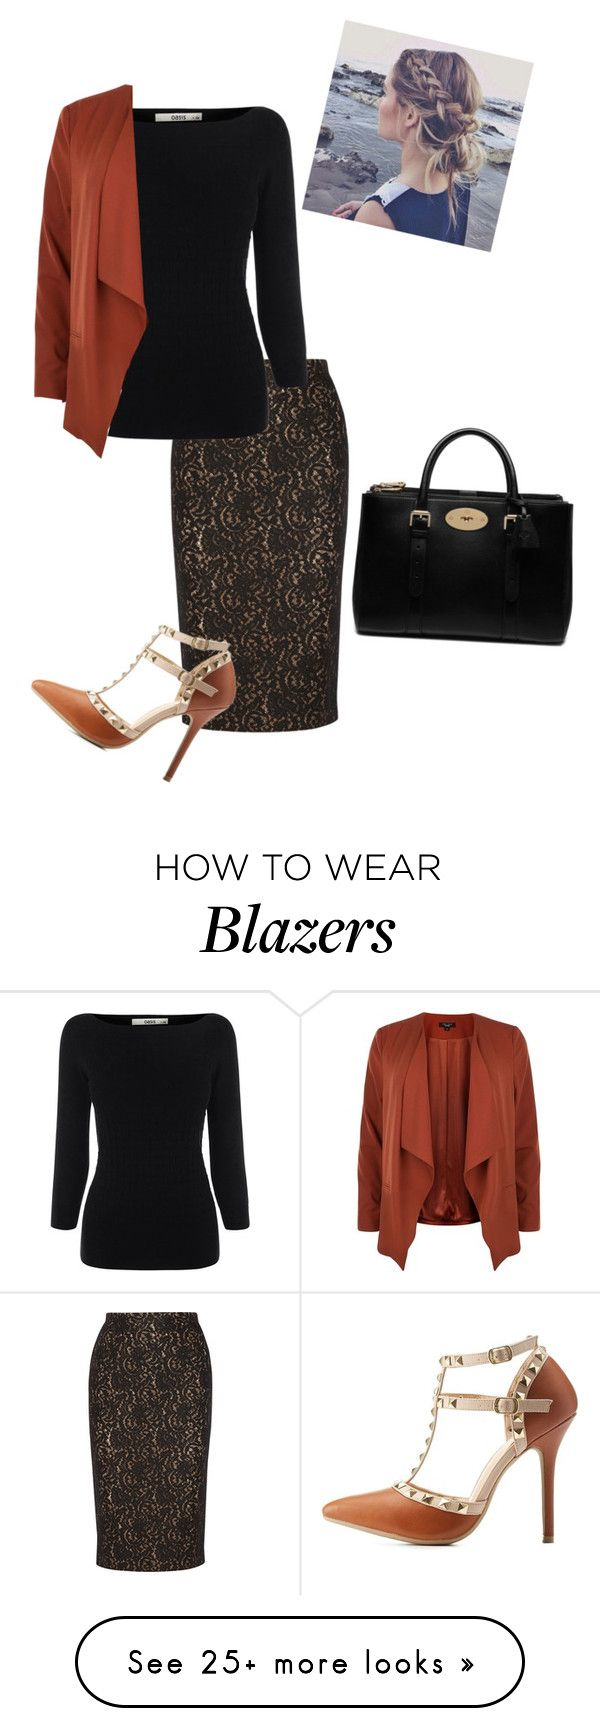 """Untitled #81"" by rae1997 on Polyvore featuring N°21, Oasis, Charlotte Russe and Mulberry"